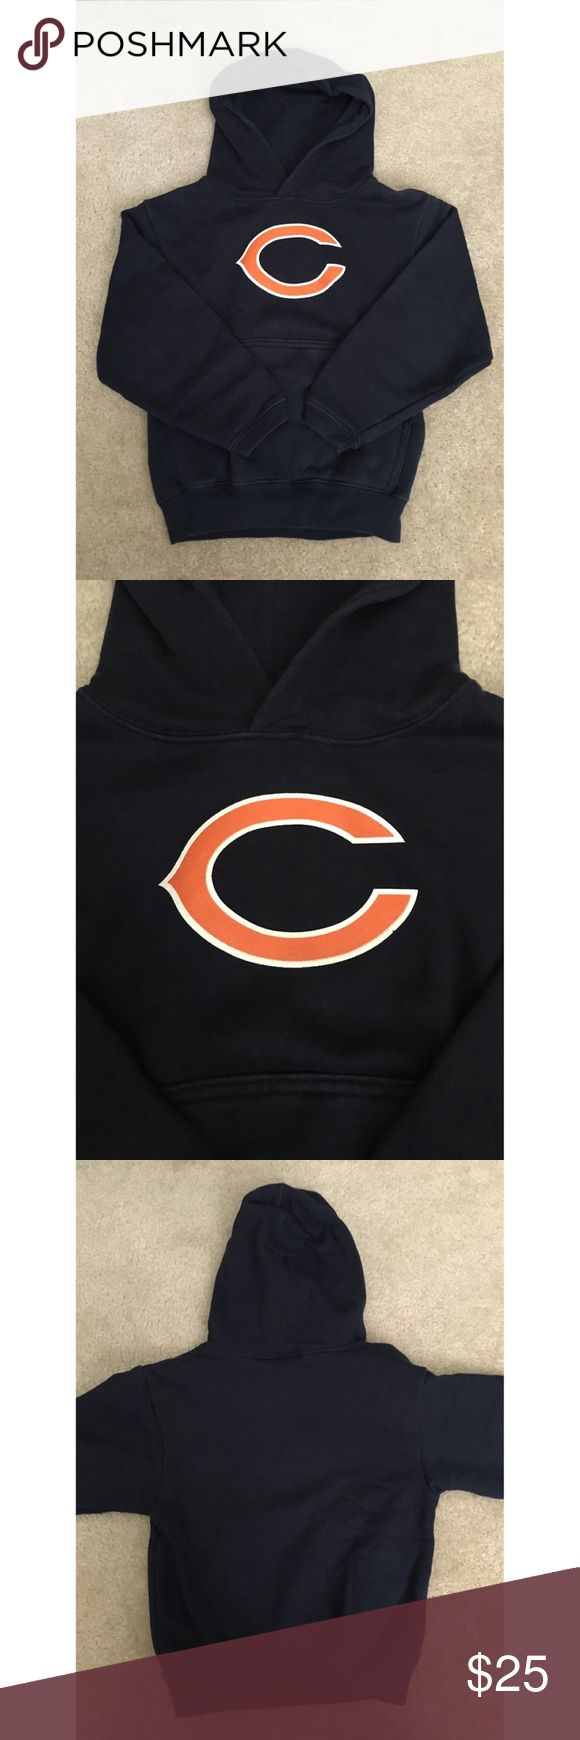 Boys Girls Unisex Reebok Chicago Bears Sweatshirt Gently worn. No holes or stains. Unisex for boys or girls Chicago Bears 🐻 hoodie sweatshirt size 5/6. This was given to my son from the Chicago Bears producer. Reebok Shirts & Tops Sweatshirts & Hoodies